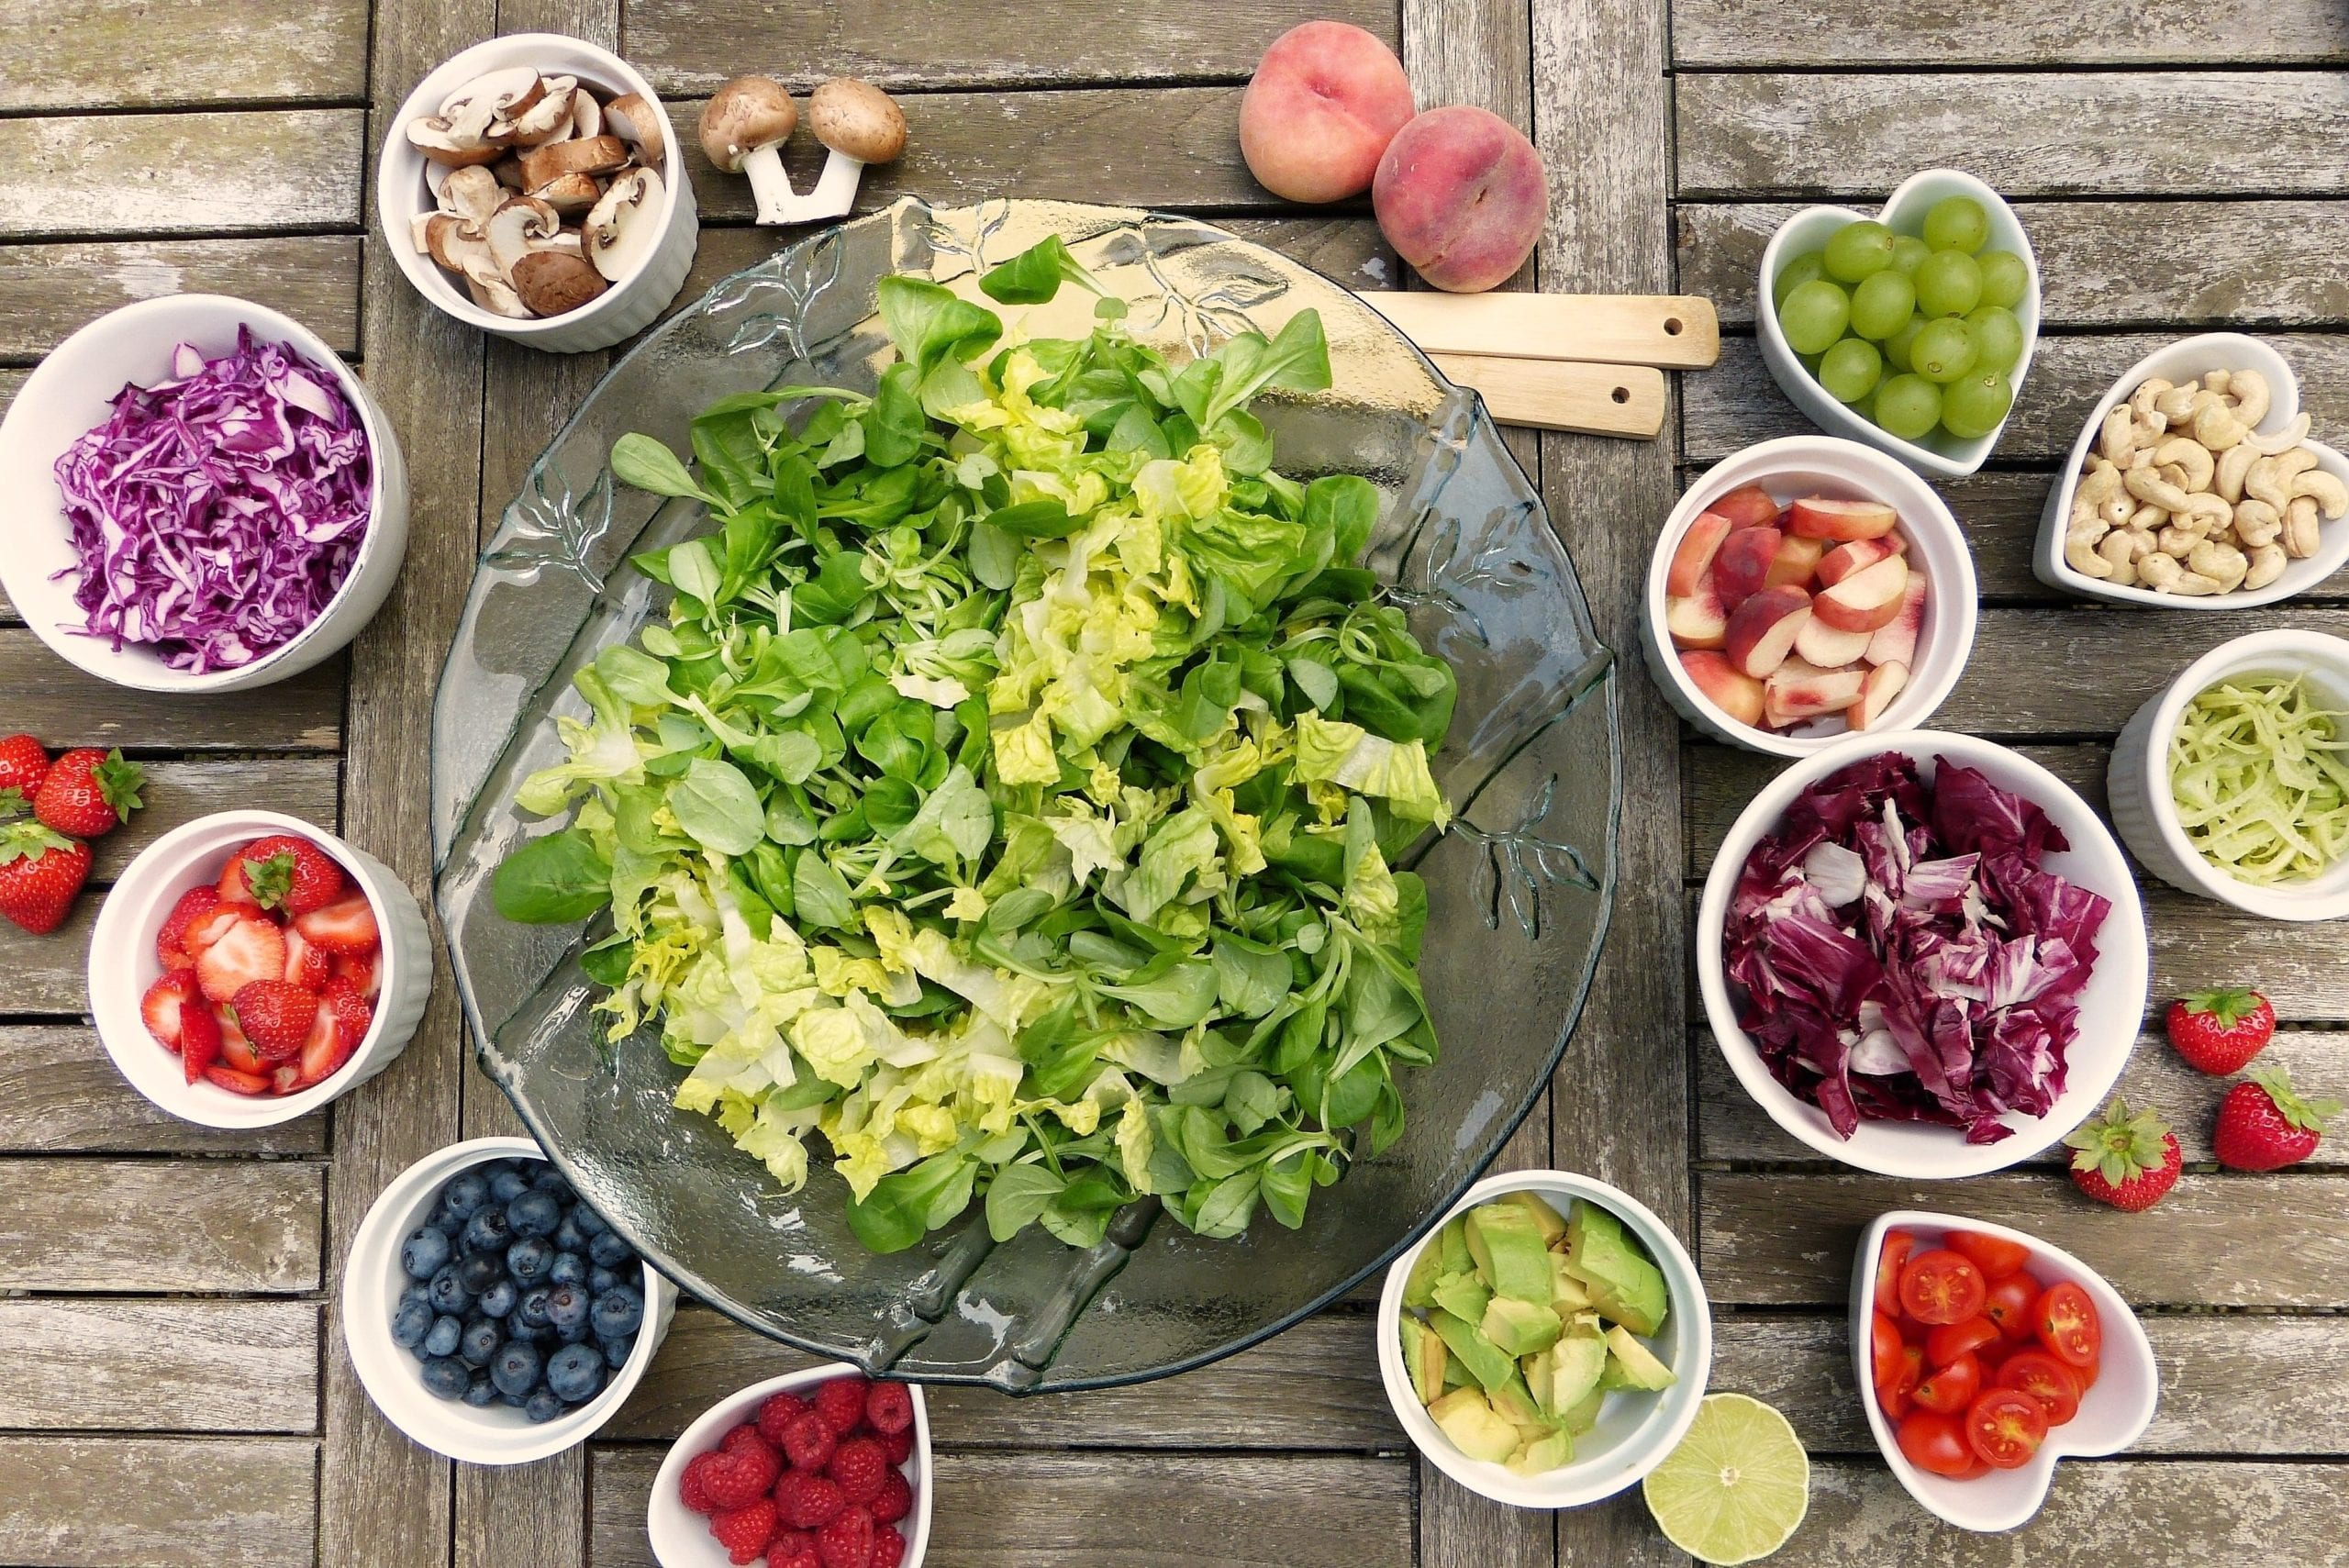 8 Nutrition Rules to Gain Muscle Fast